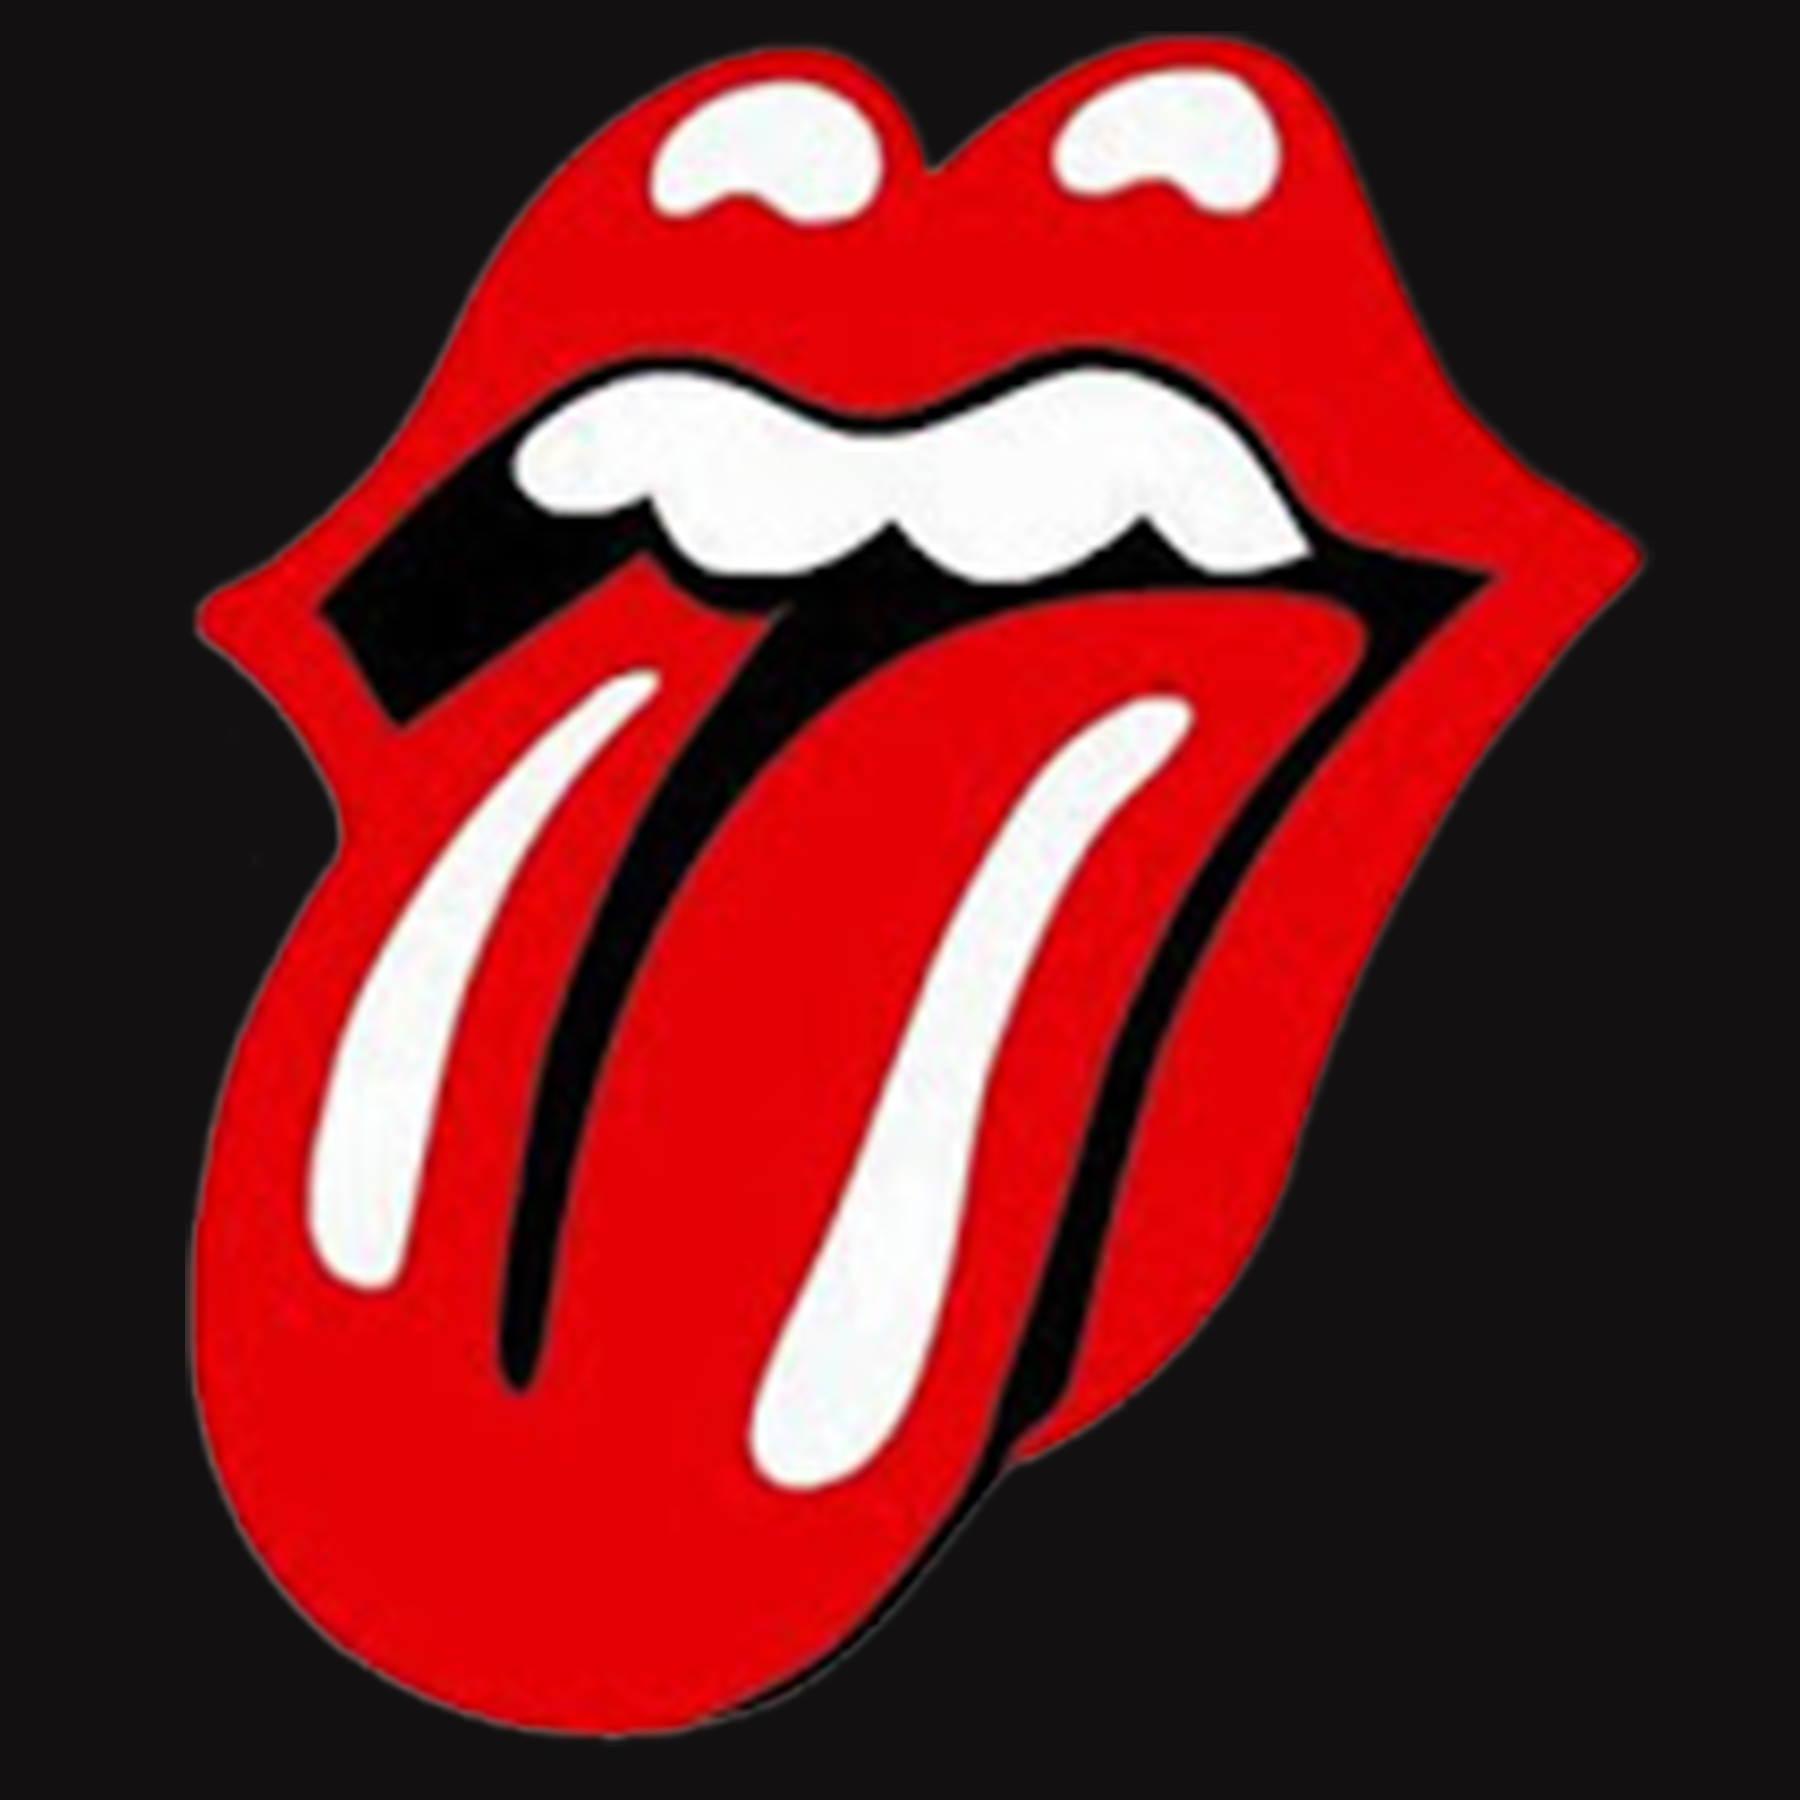 The Cars Band Cover Wallpaper Pin The Rolling Stones Logo Resources Pictures On Pinterest